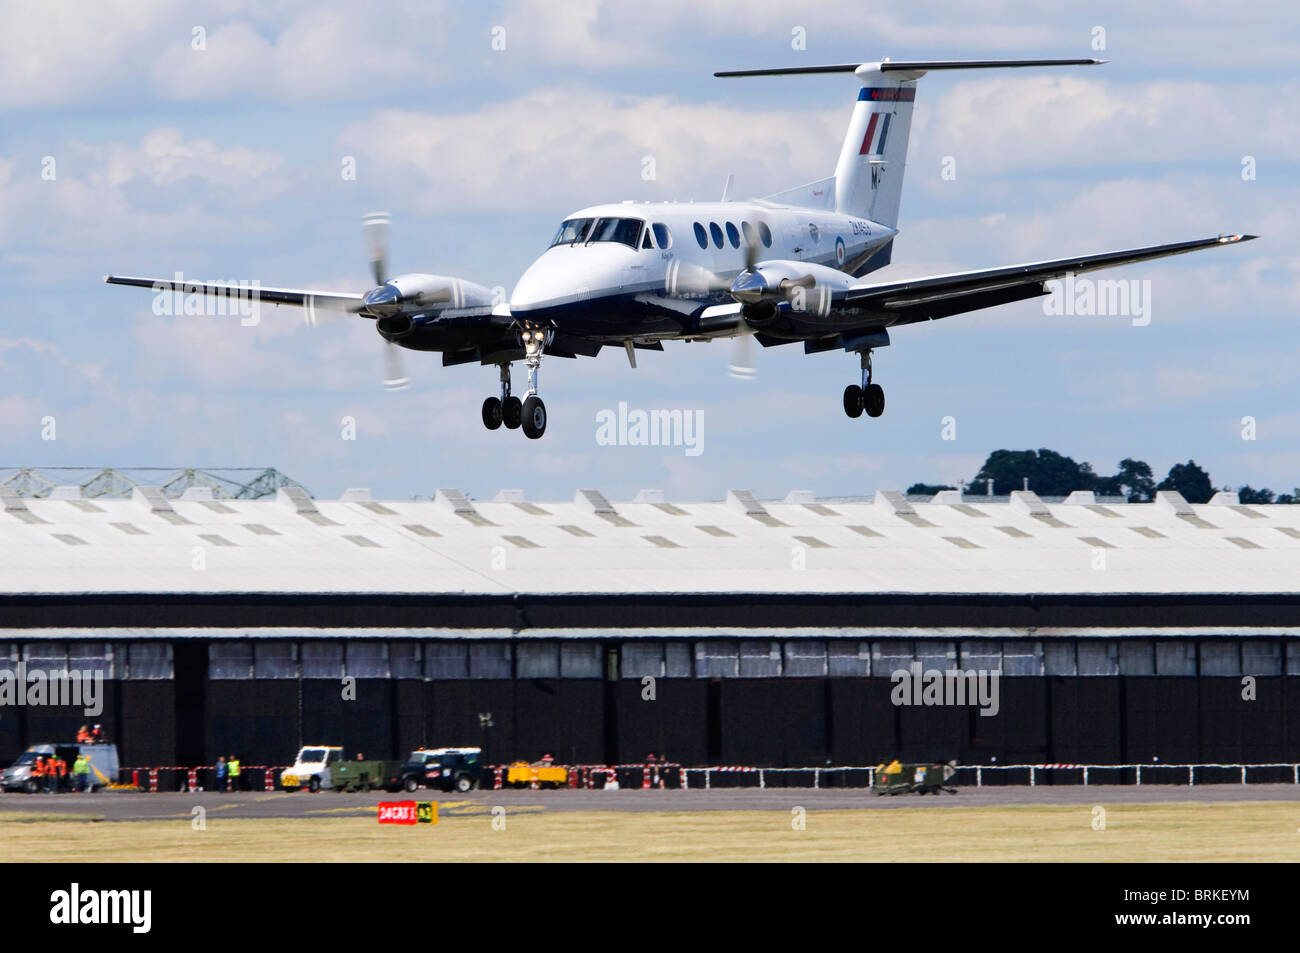 Beechcraft/Raytheon B200 King Air operated by the RAF on approach for landing at Farnborough Airshow, UK. - Stock Image